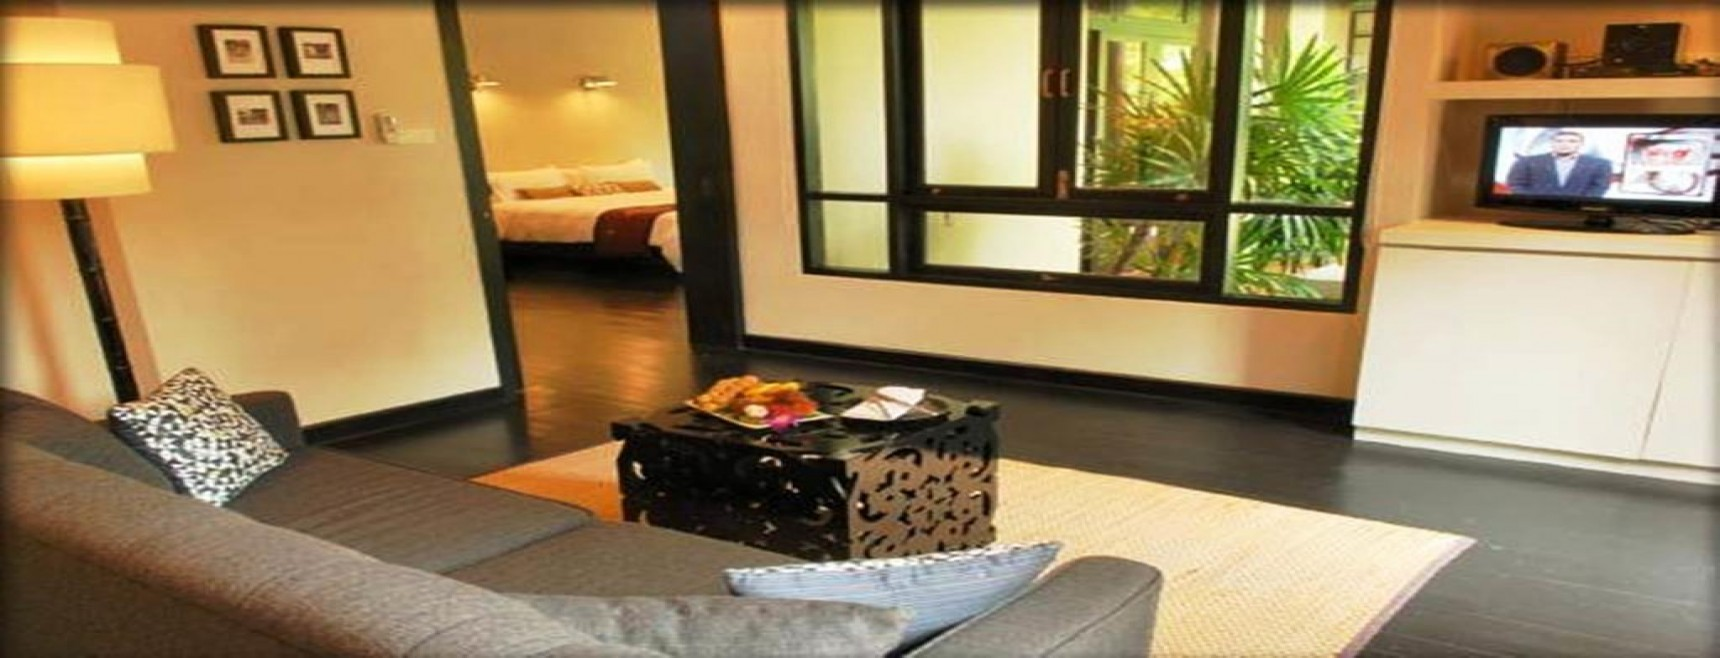 9 Bedrooms, 9 Rooms, Hotel, Hotels, 11 Bathrooms, Listing ID 1388, Lamai, South East, Koh Samui,